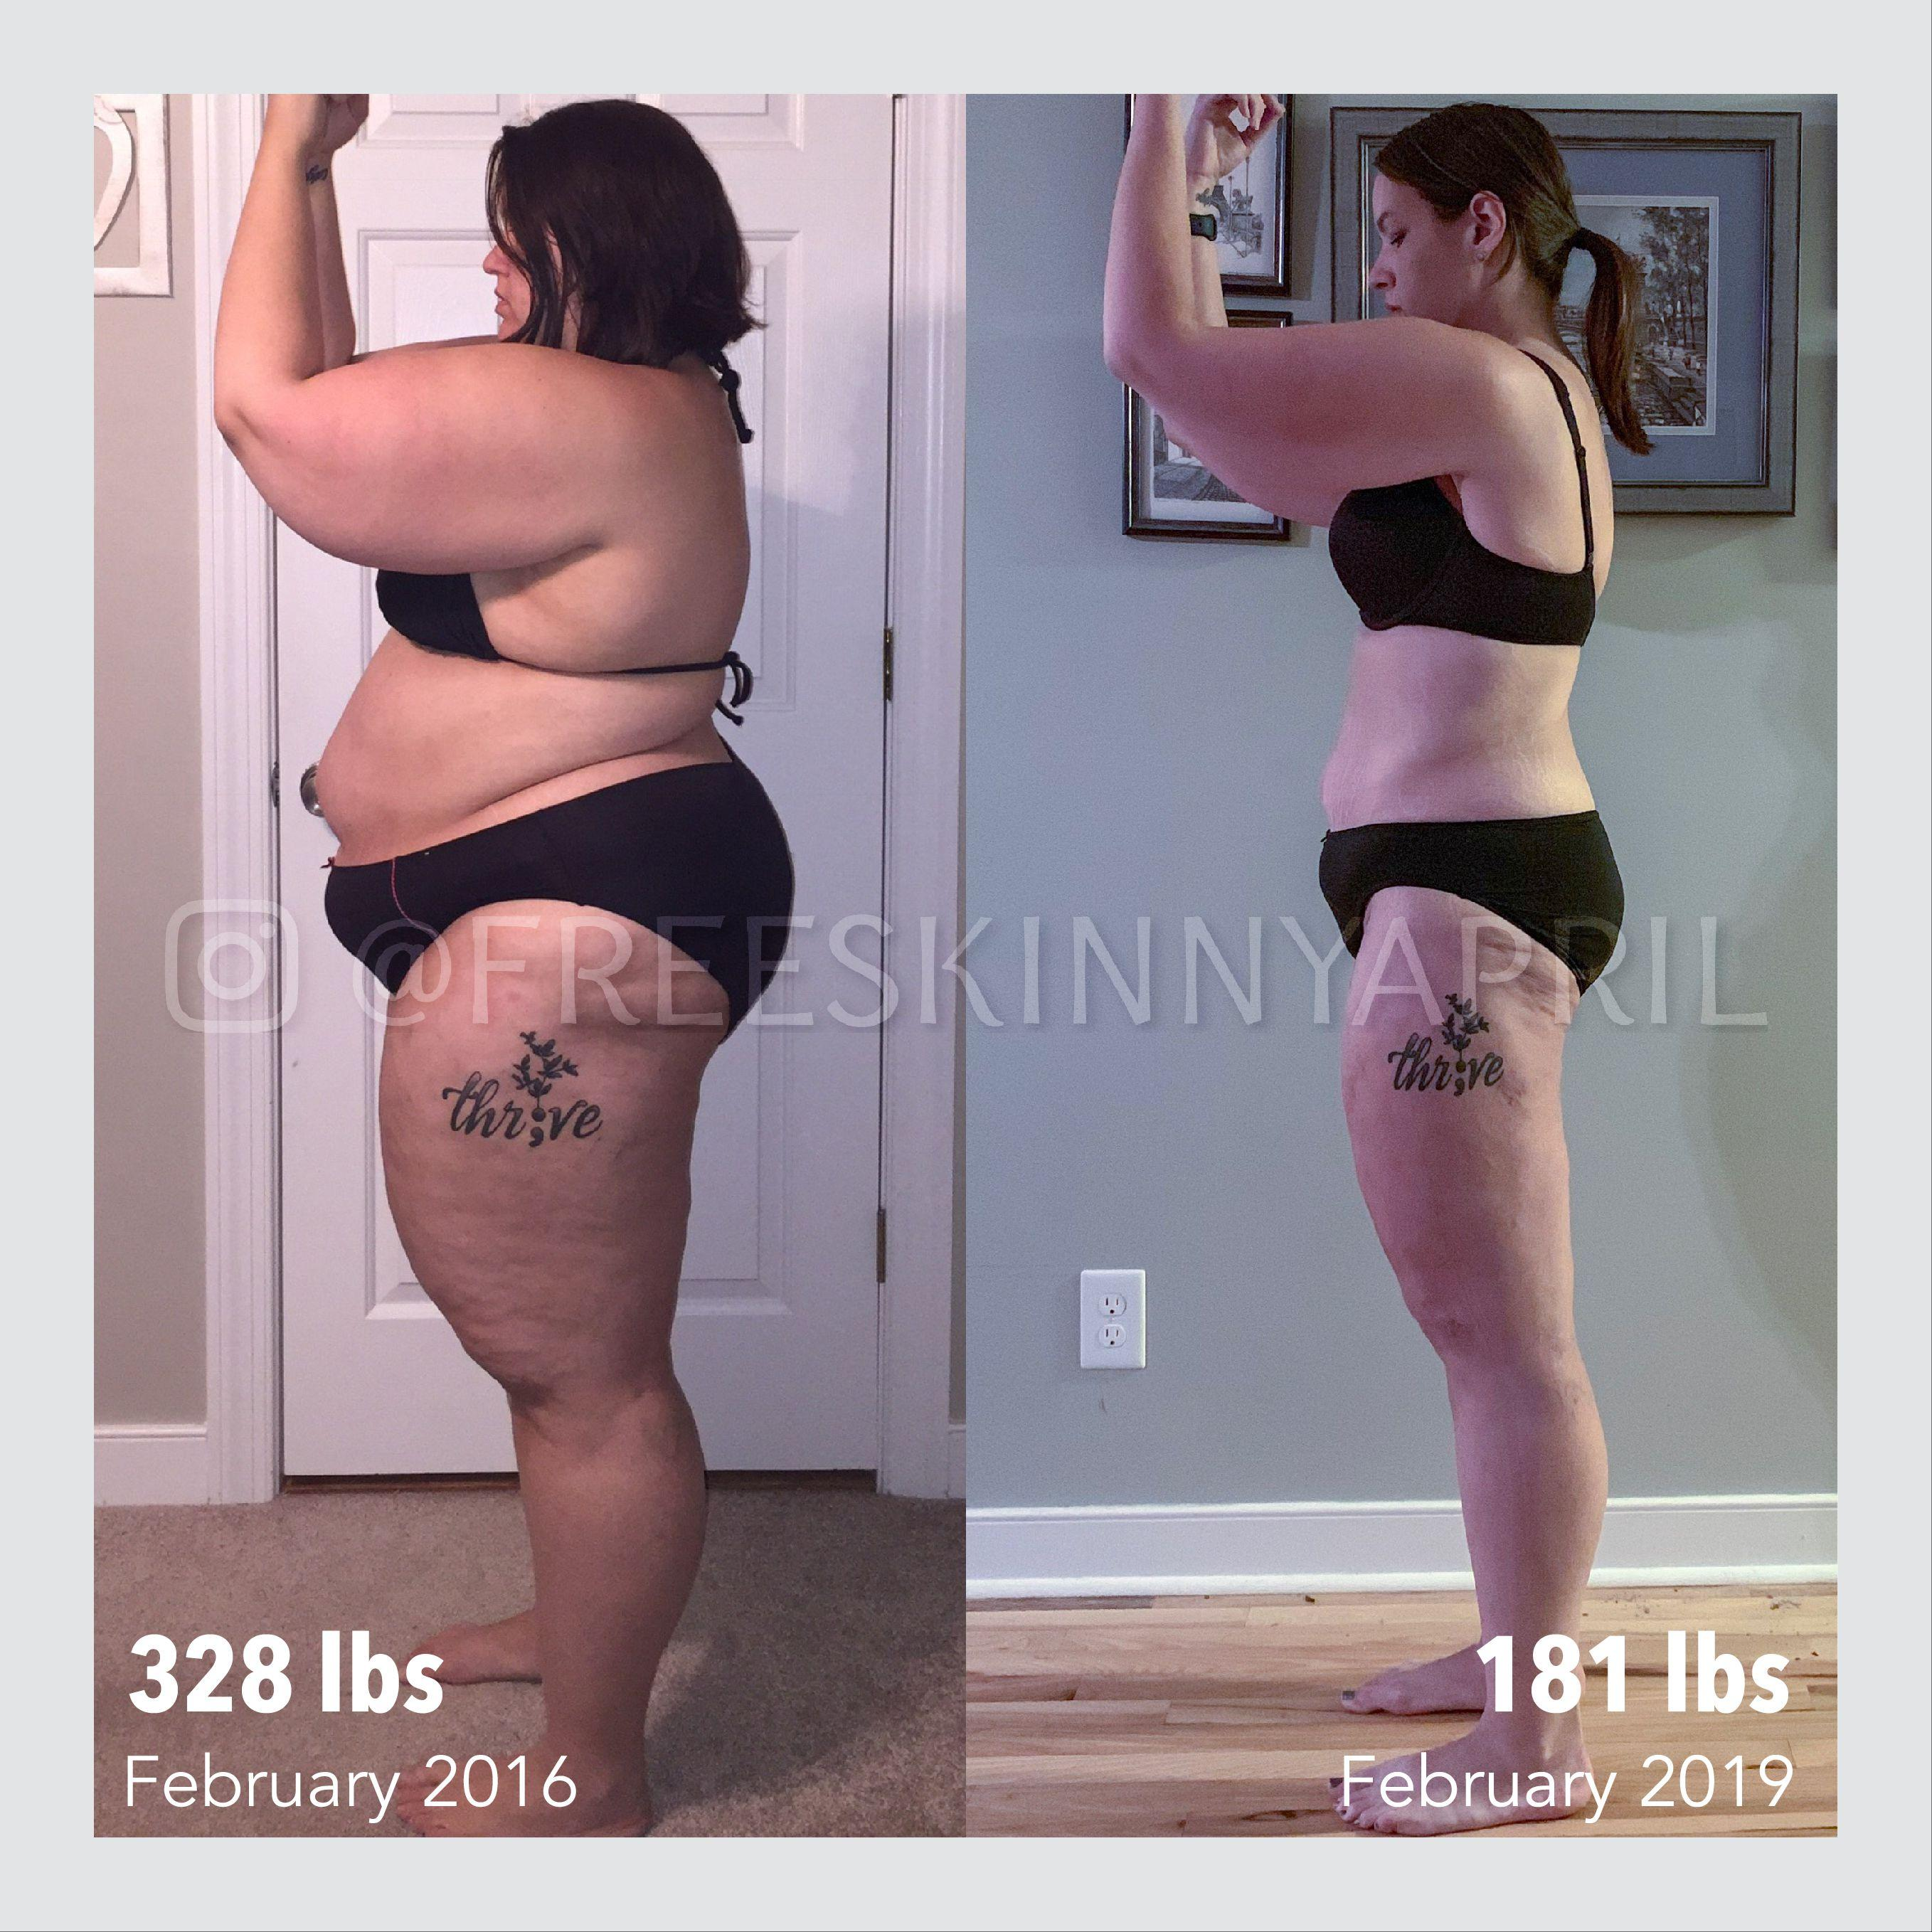 Before and After 147 lbs Weight Loss 5 feet 7 Female 328 lbs to 181 lbs